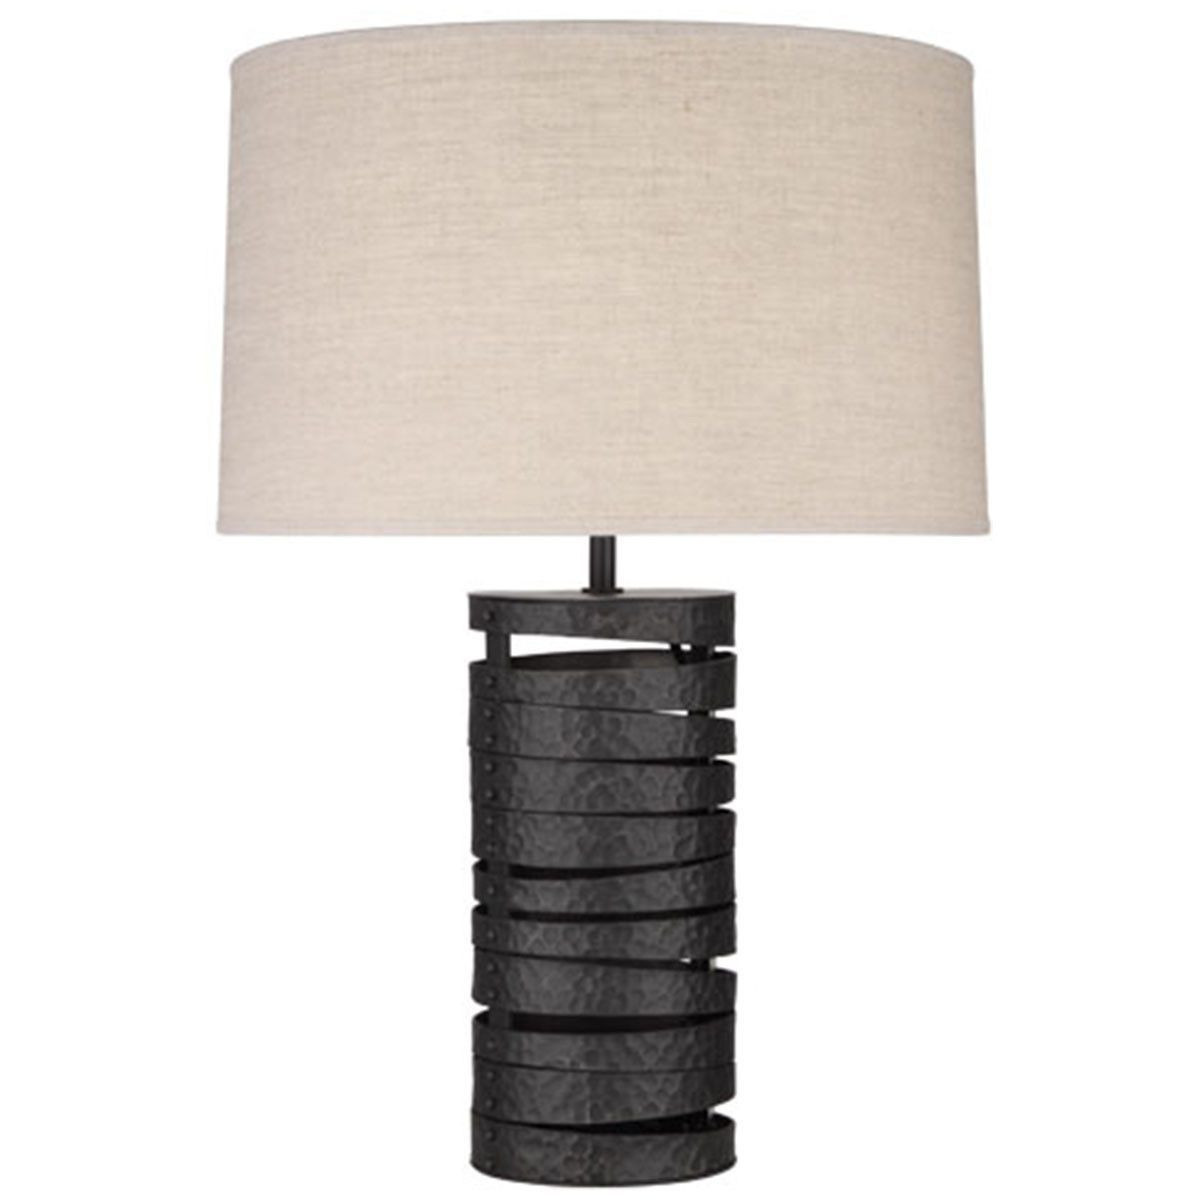 Robert Abbey Industrial Style Table Lamp